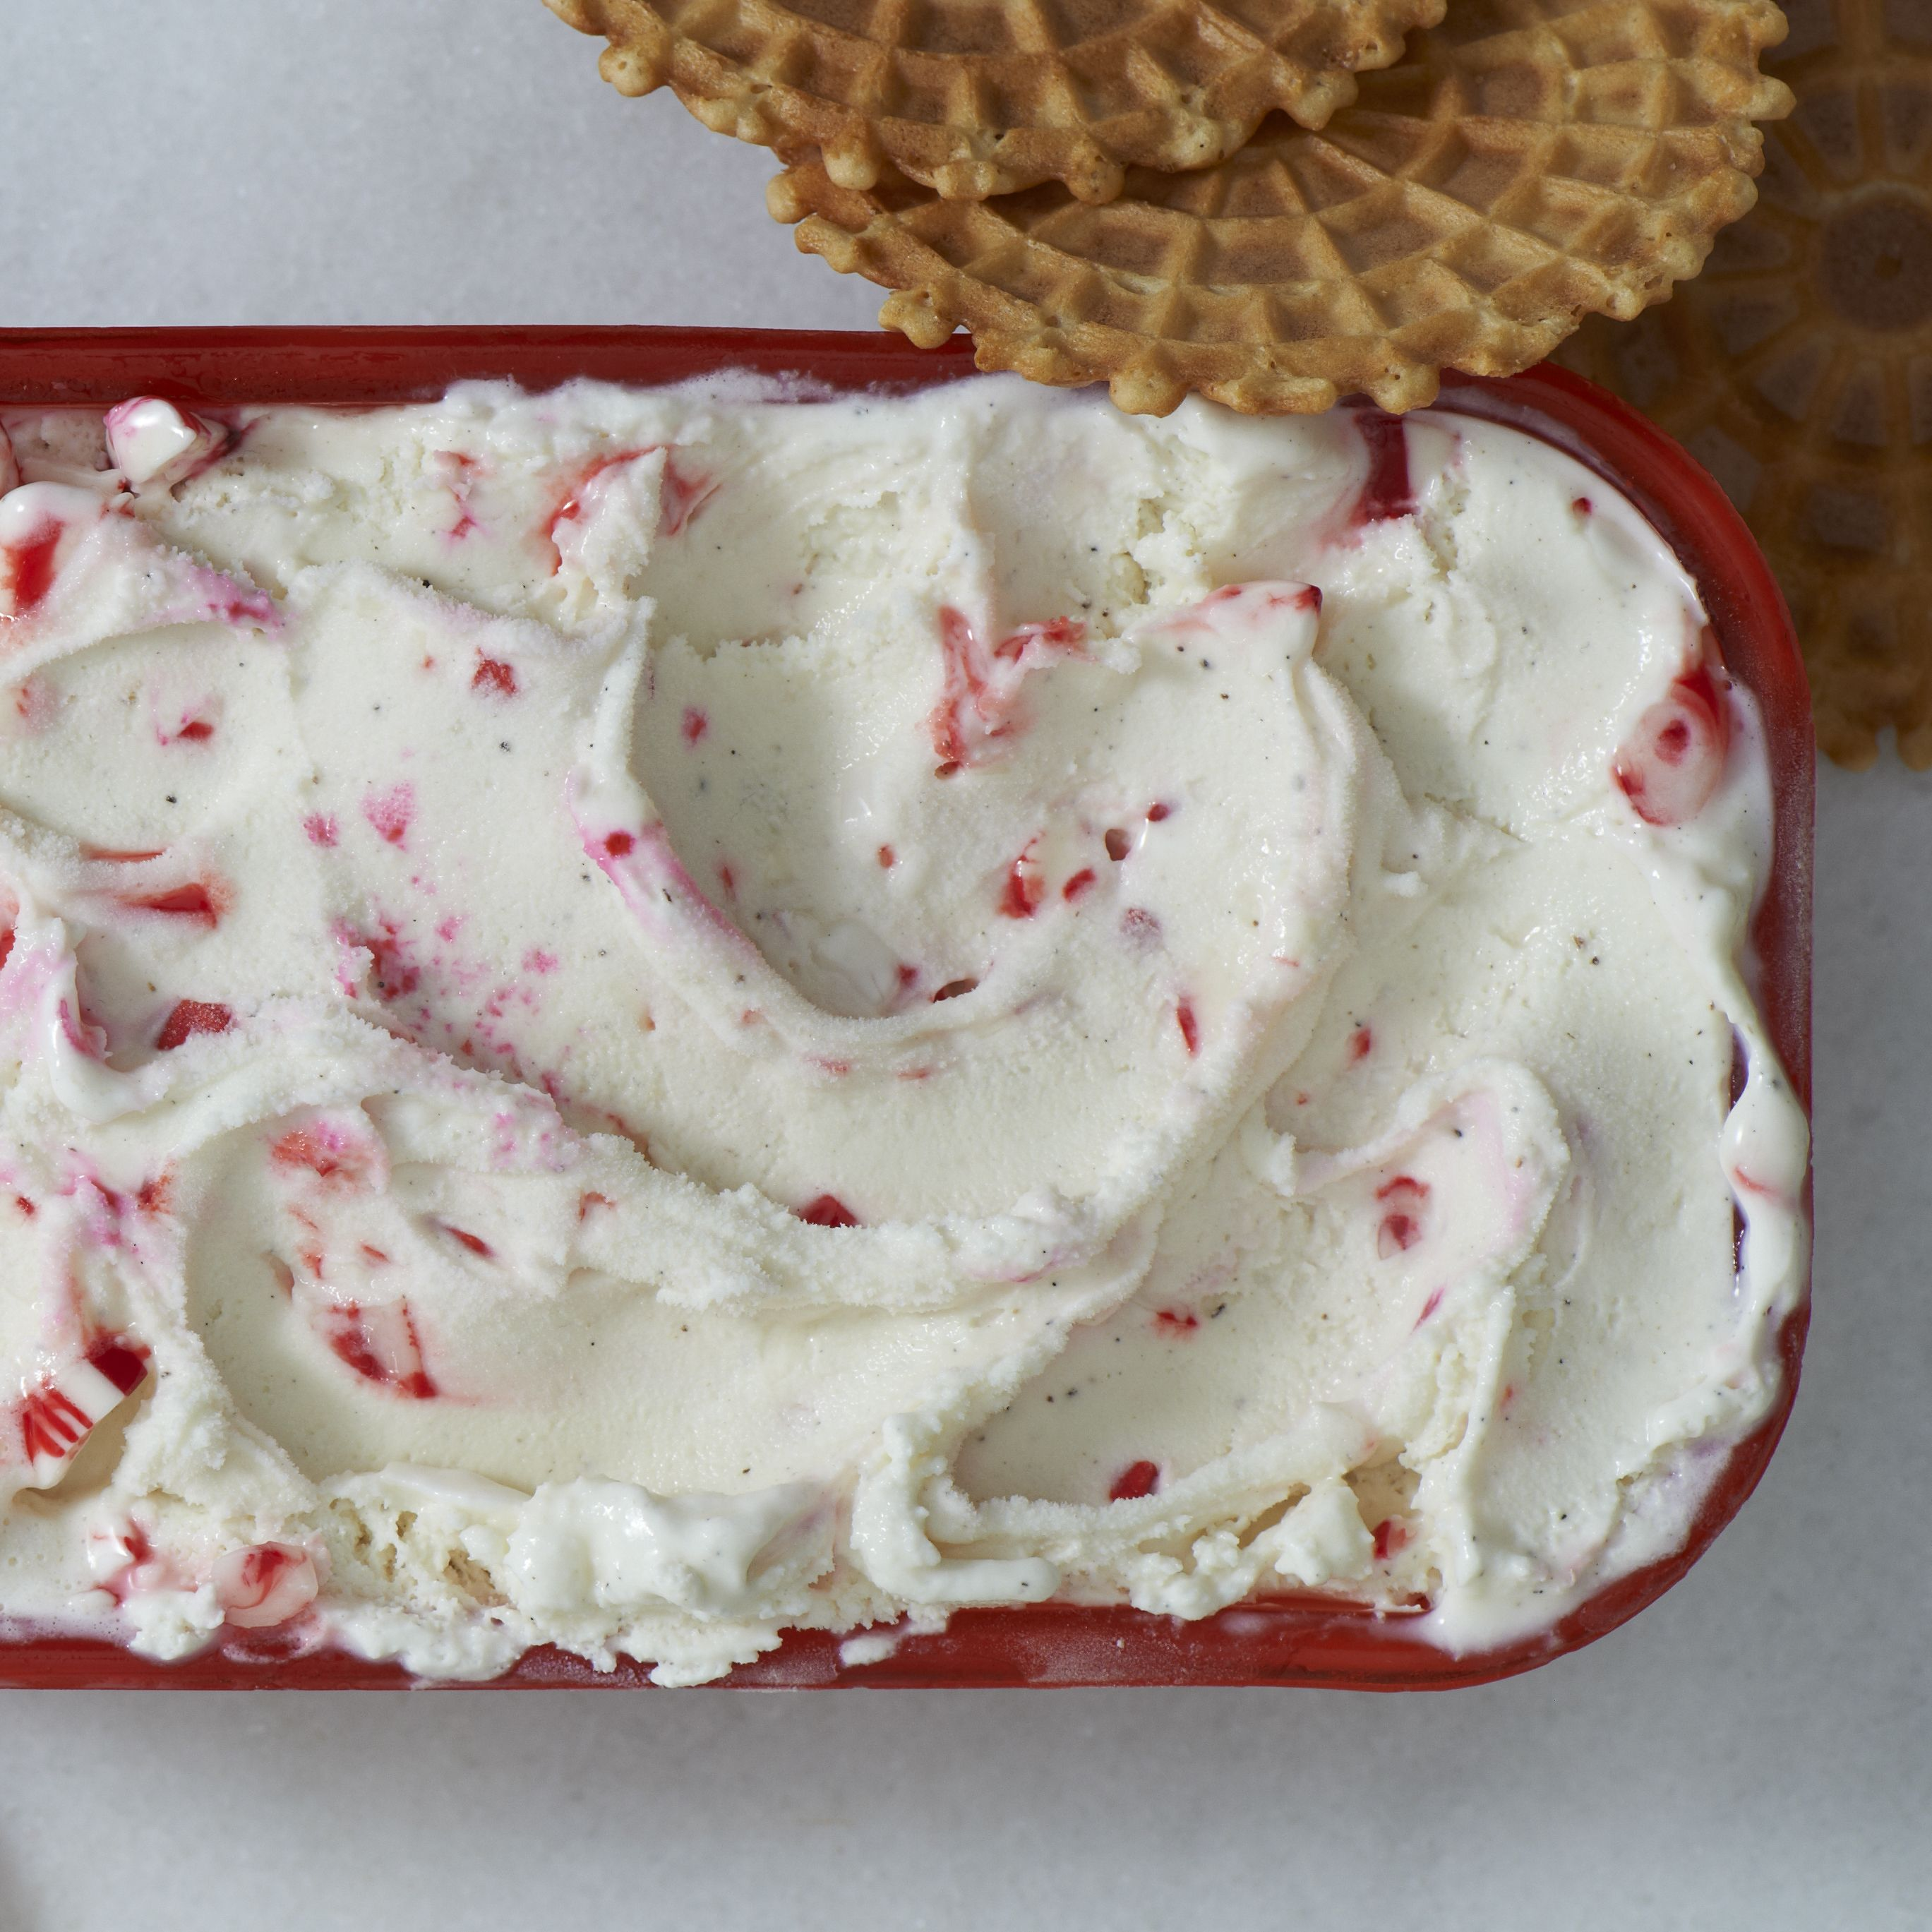 Tis the season for peppermint! Make the best of it with this homemade ice cream swirl—a perfect treat to bring at your next holiday potluck. Just spread 1/2 of the Breyers® Natural Vanilla Ice Cream into an 8-inch loaf pan. Sprinkle with 1/2 of the crushed candies; swirl into ice cream. Repeat. Serve immediately or cover and freeze until ready to serve.